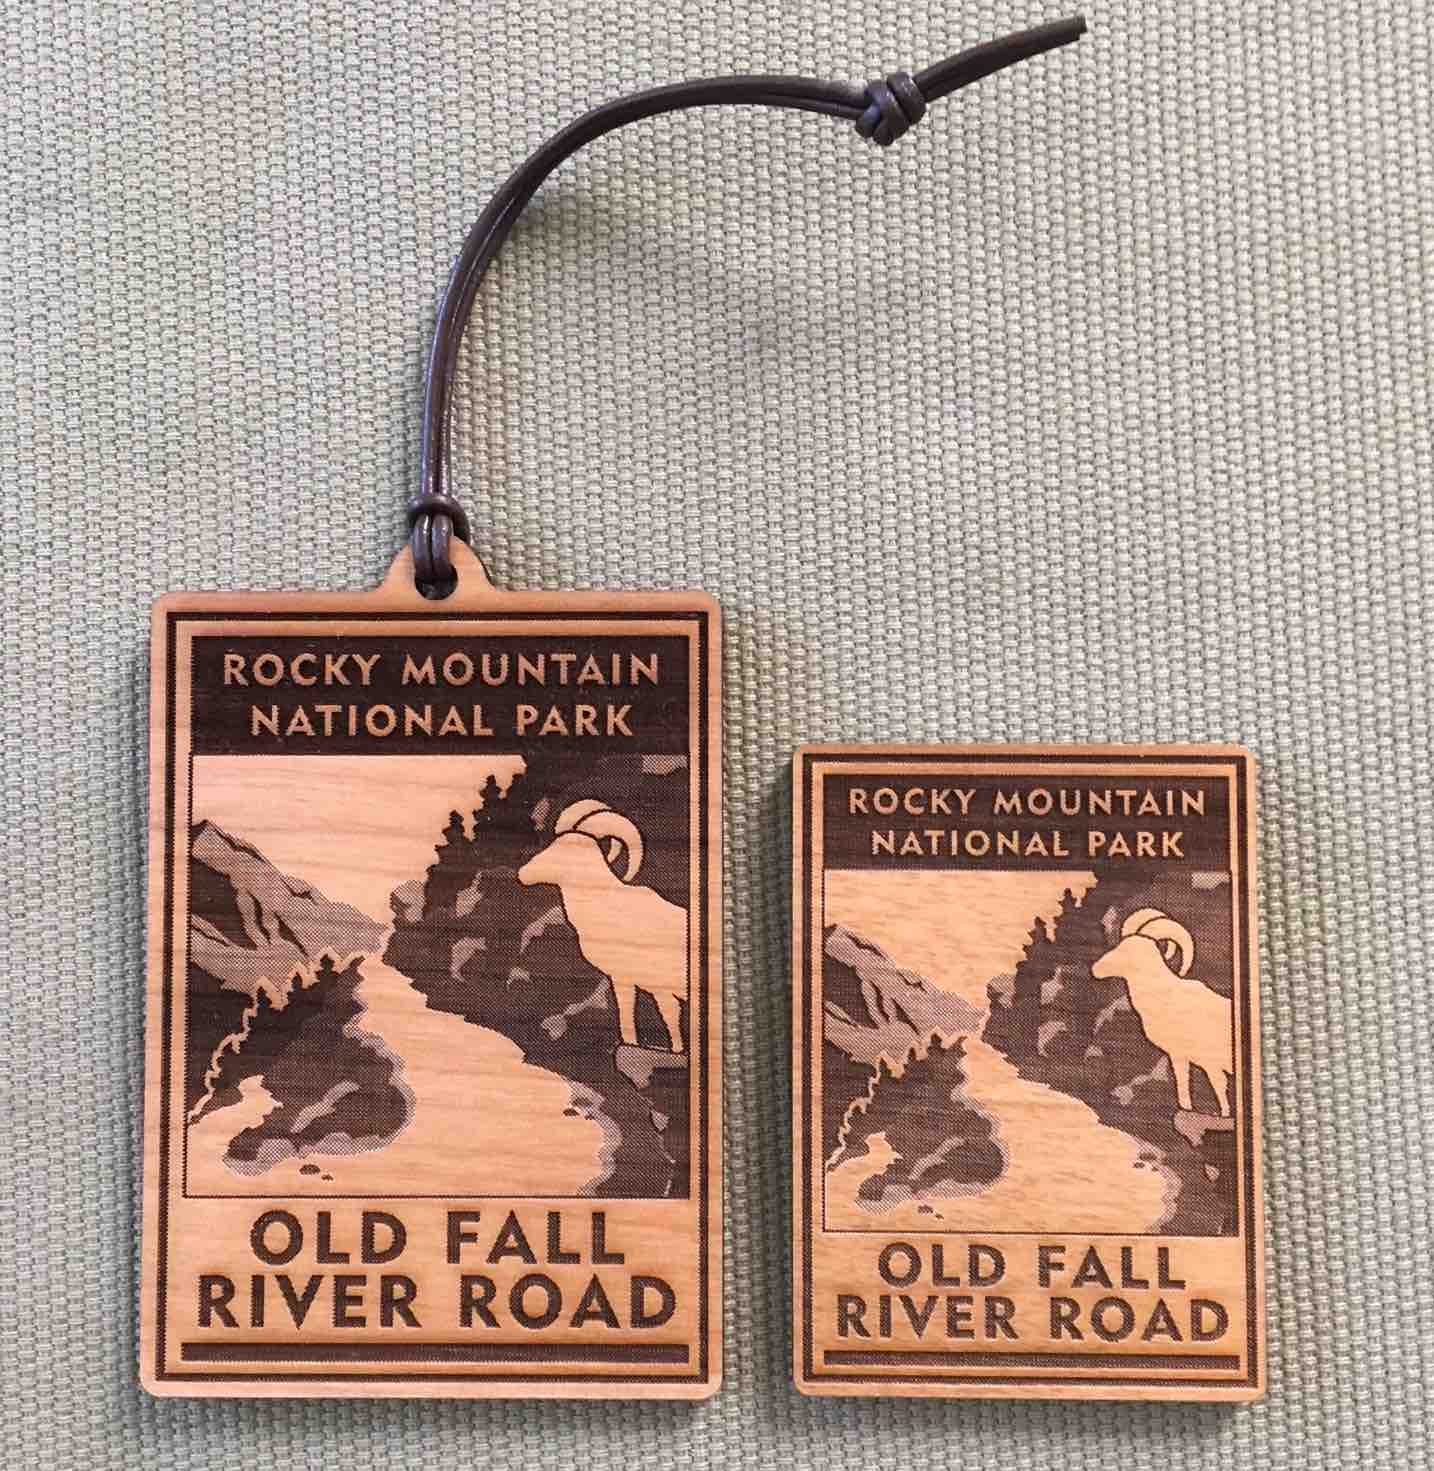 Old Fall River Road Scenic Icon - Ornament & Magnet